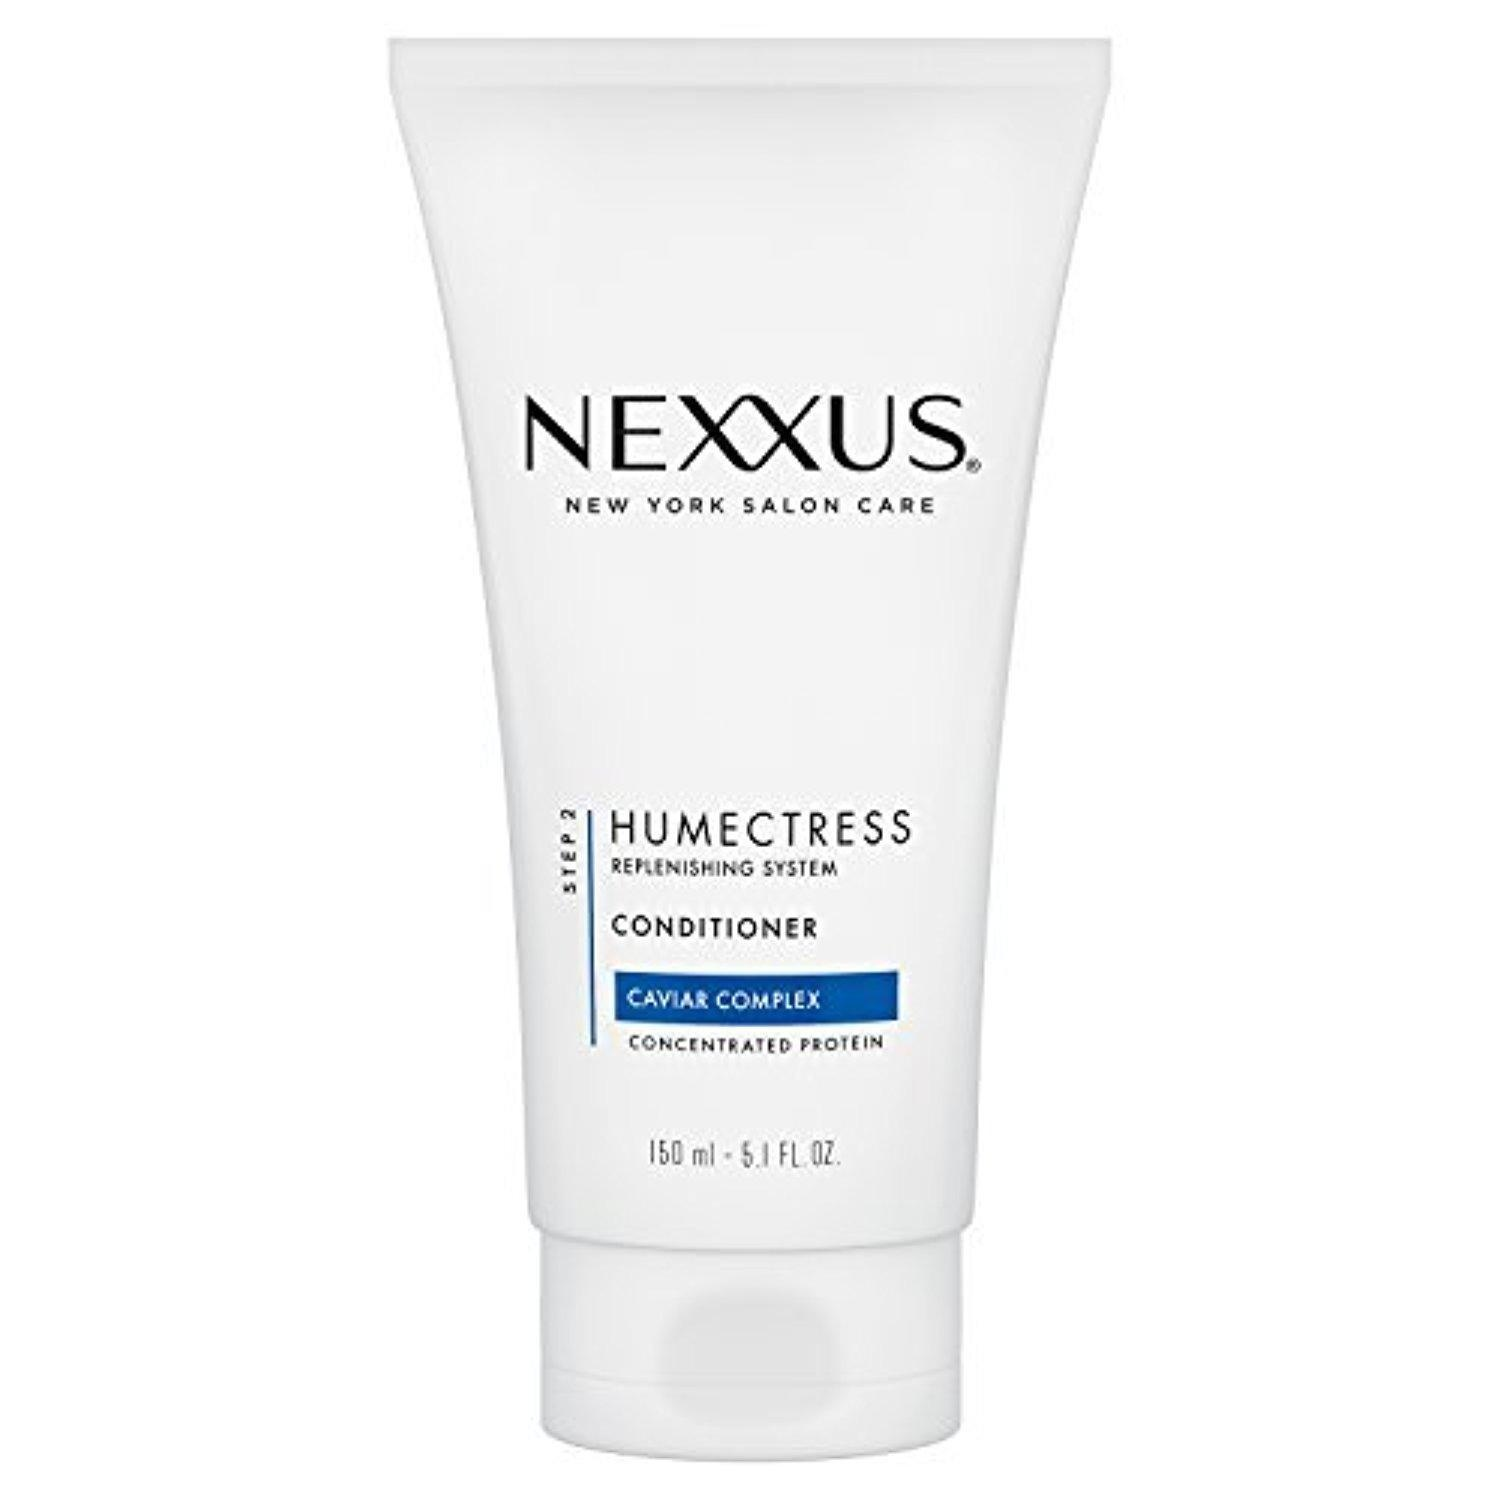 Nexxus Humectress Caviar Complex Conditioner, 5.1 oz by Nexxus